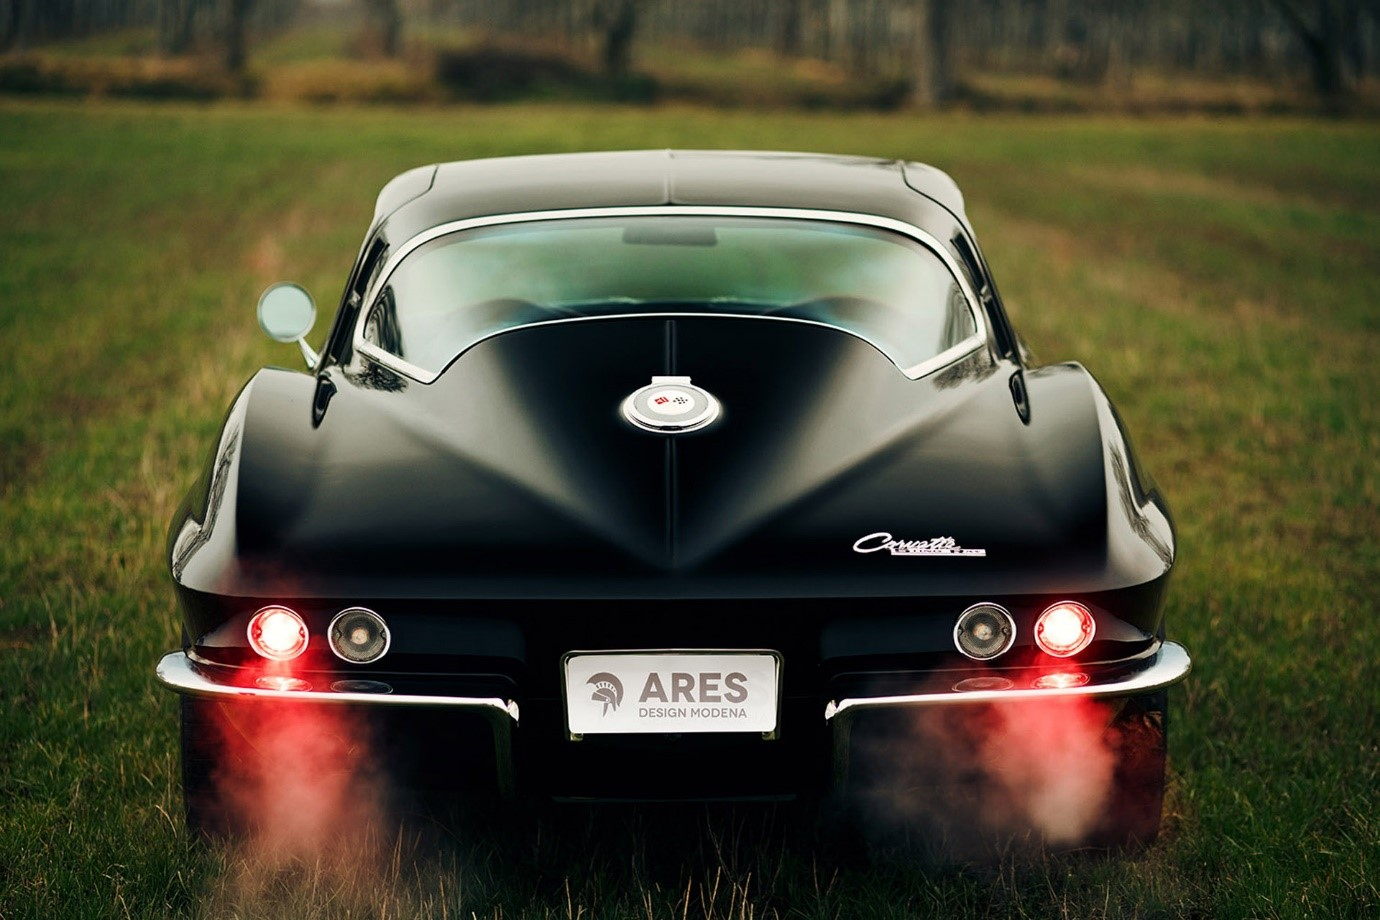 Chevrolet Corvette Stingray C2 by Ares Design - MS+ BLOG